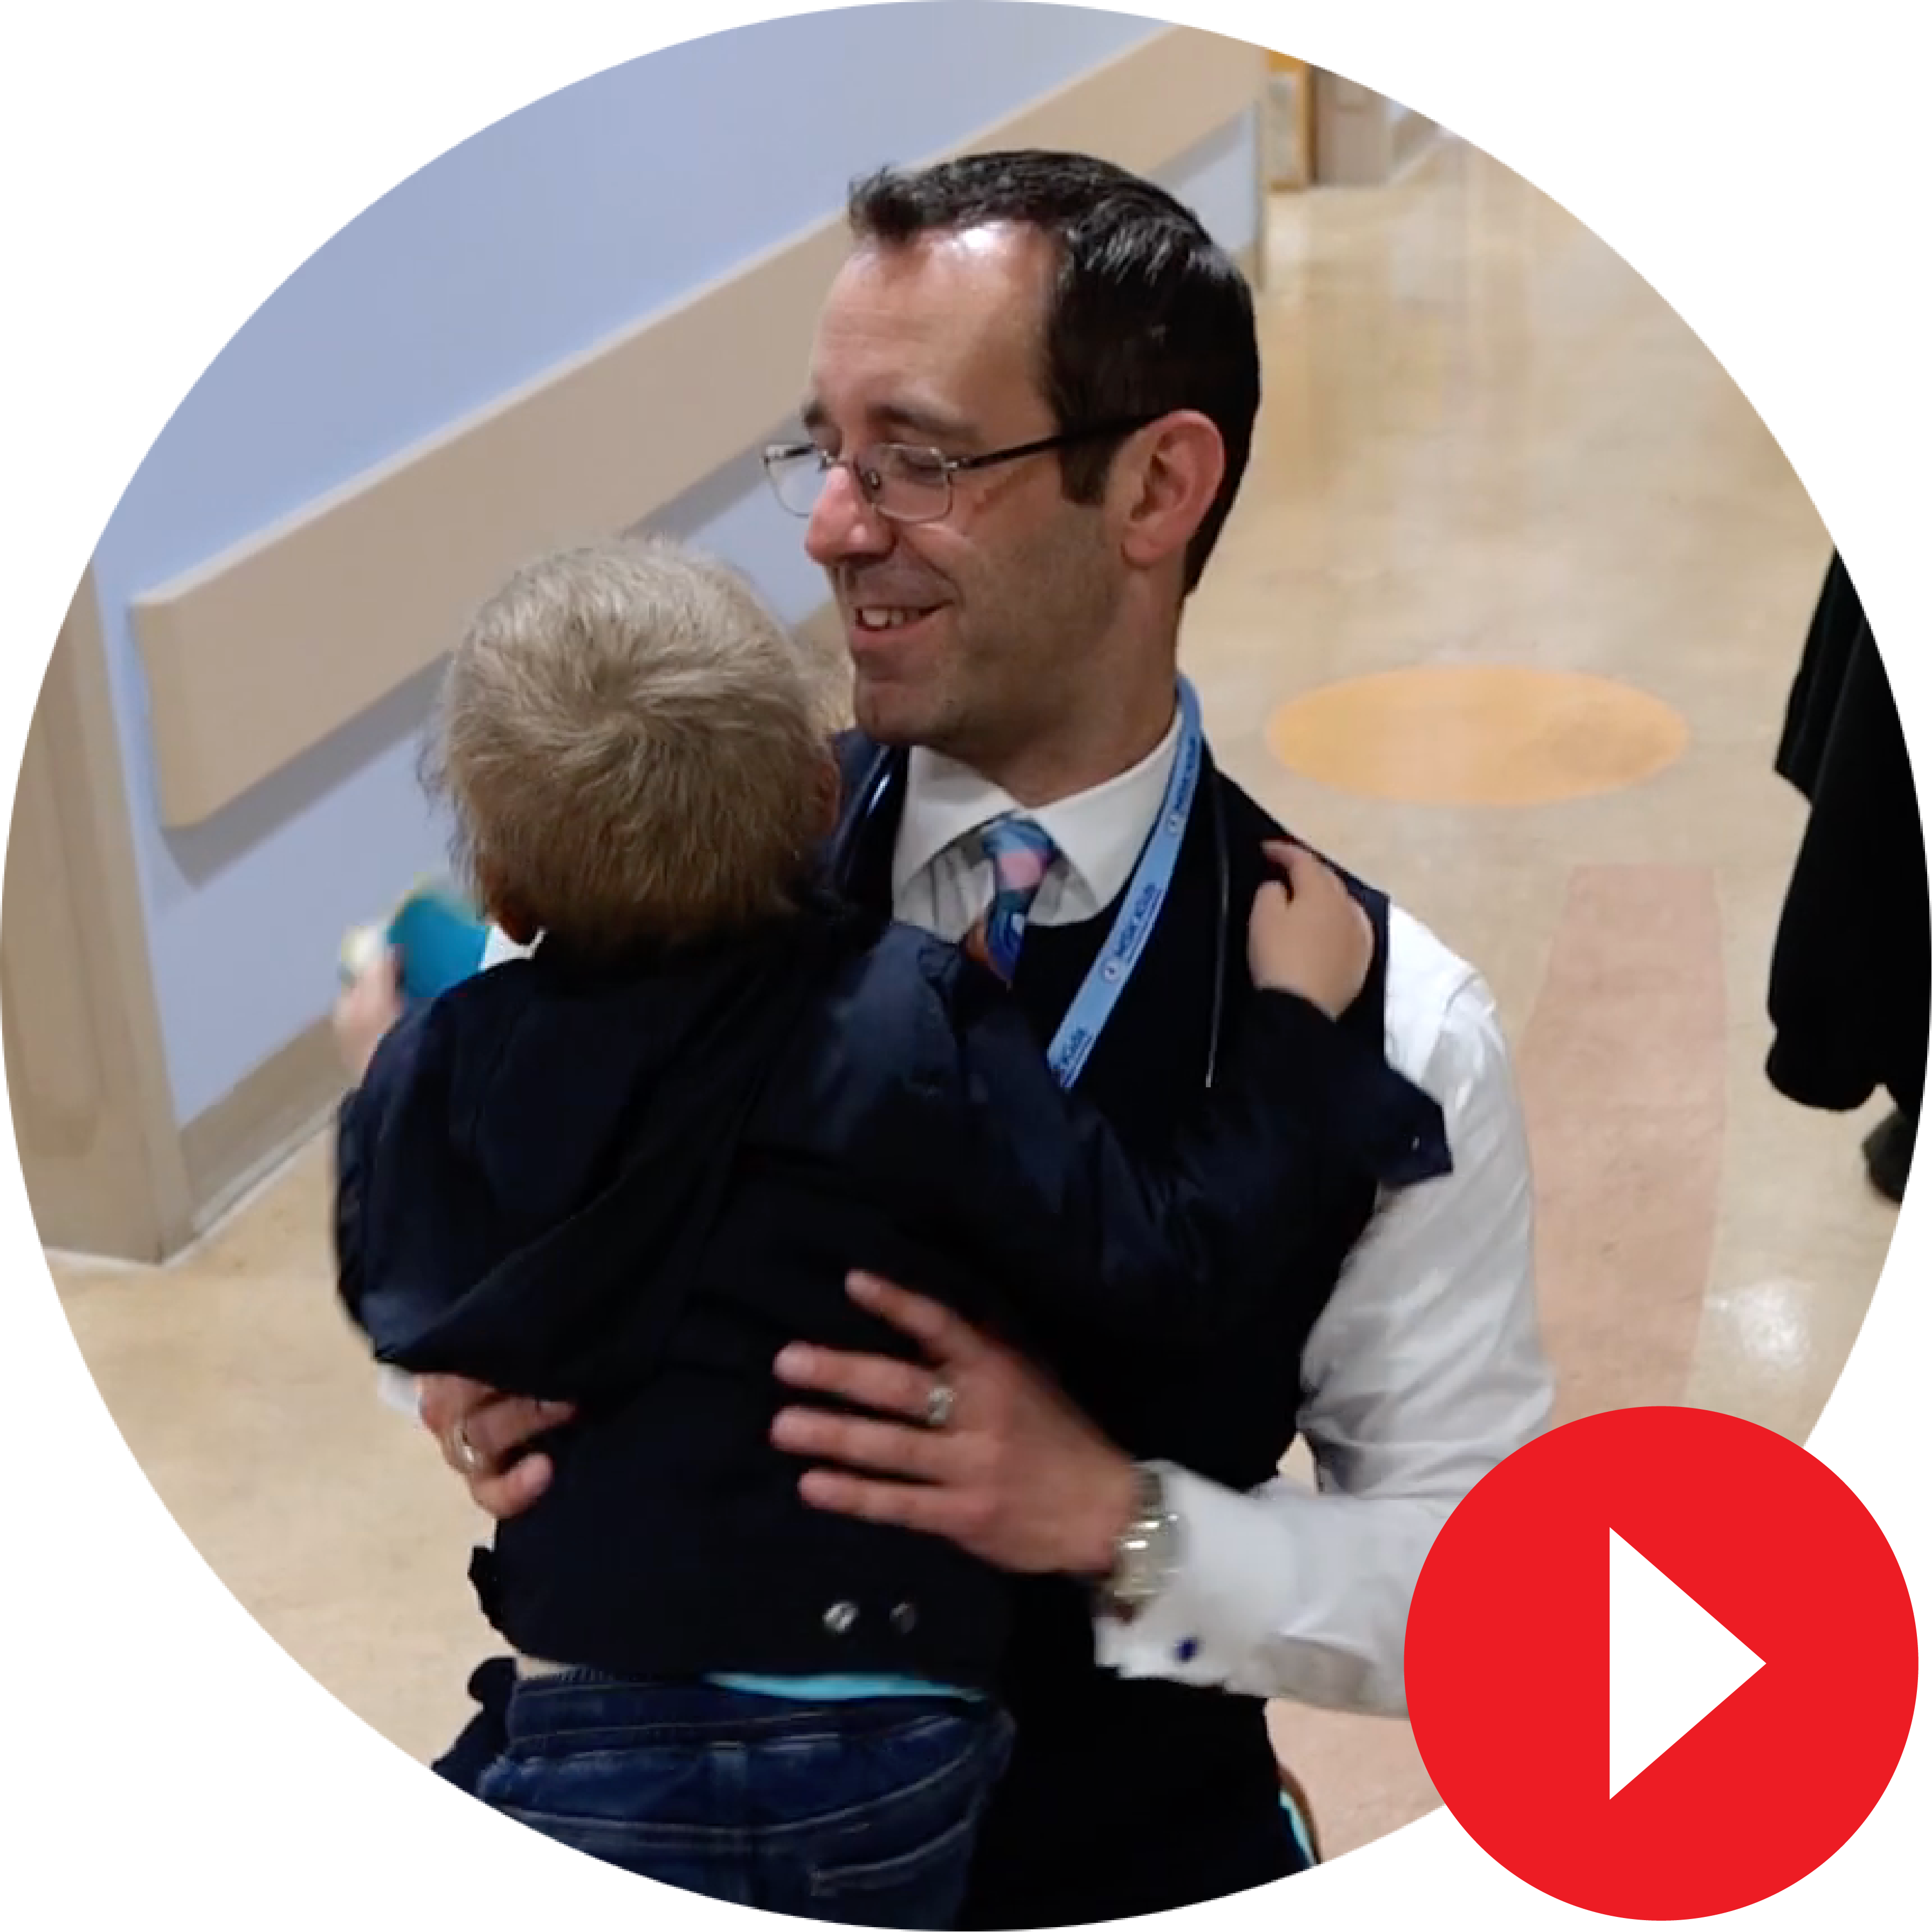 Dr. Gilheeney hugging a patient overlayed by a play video icon